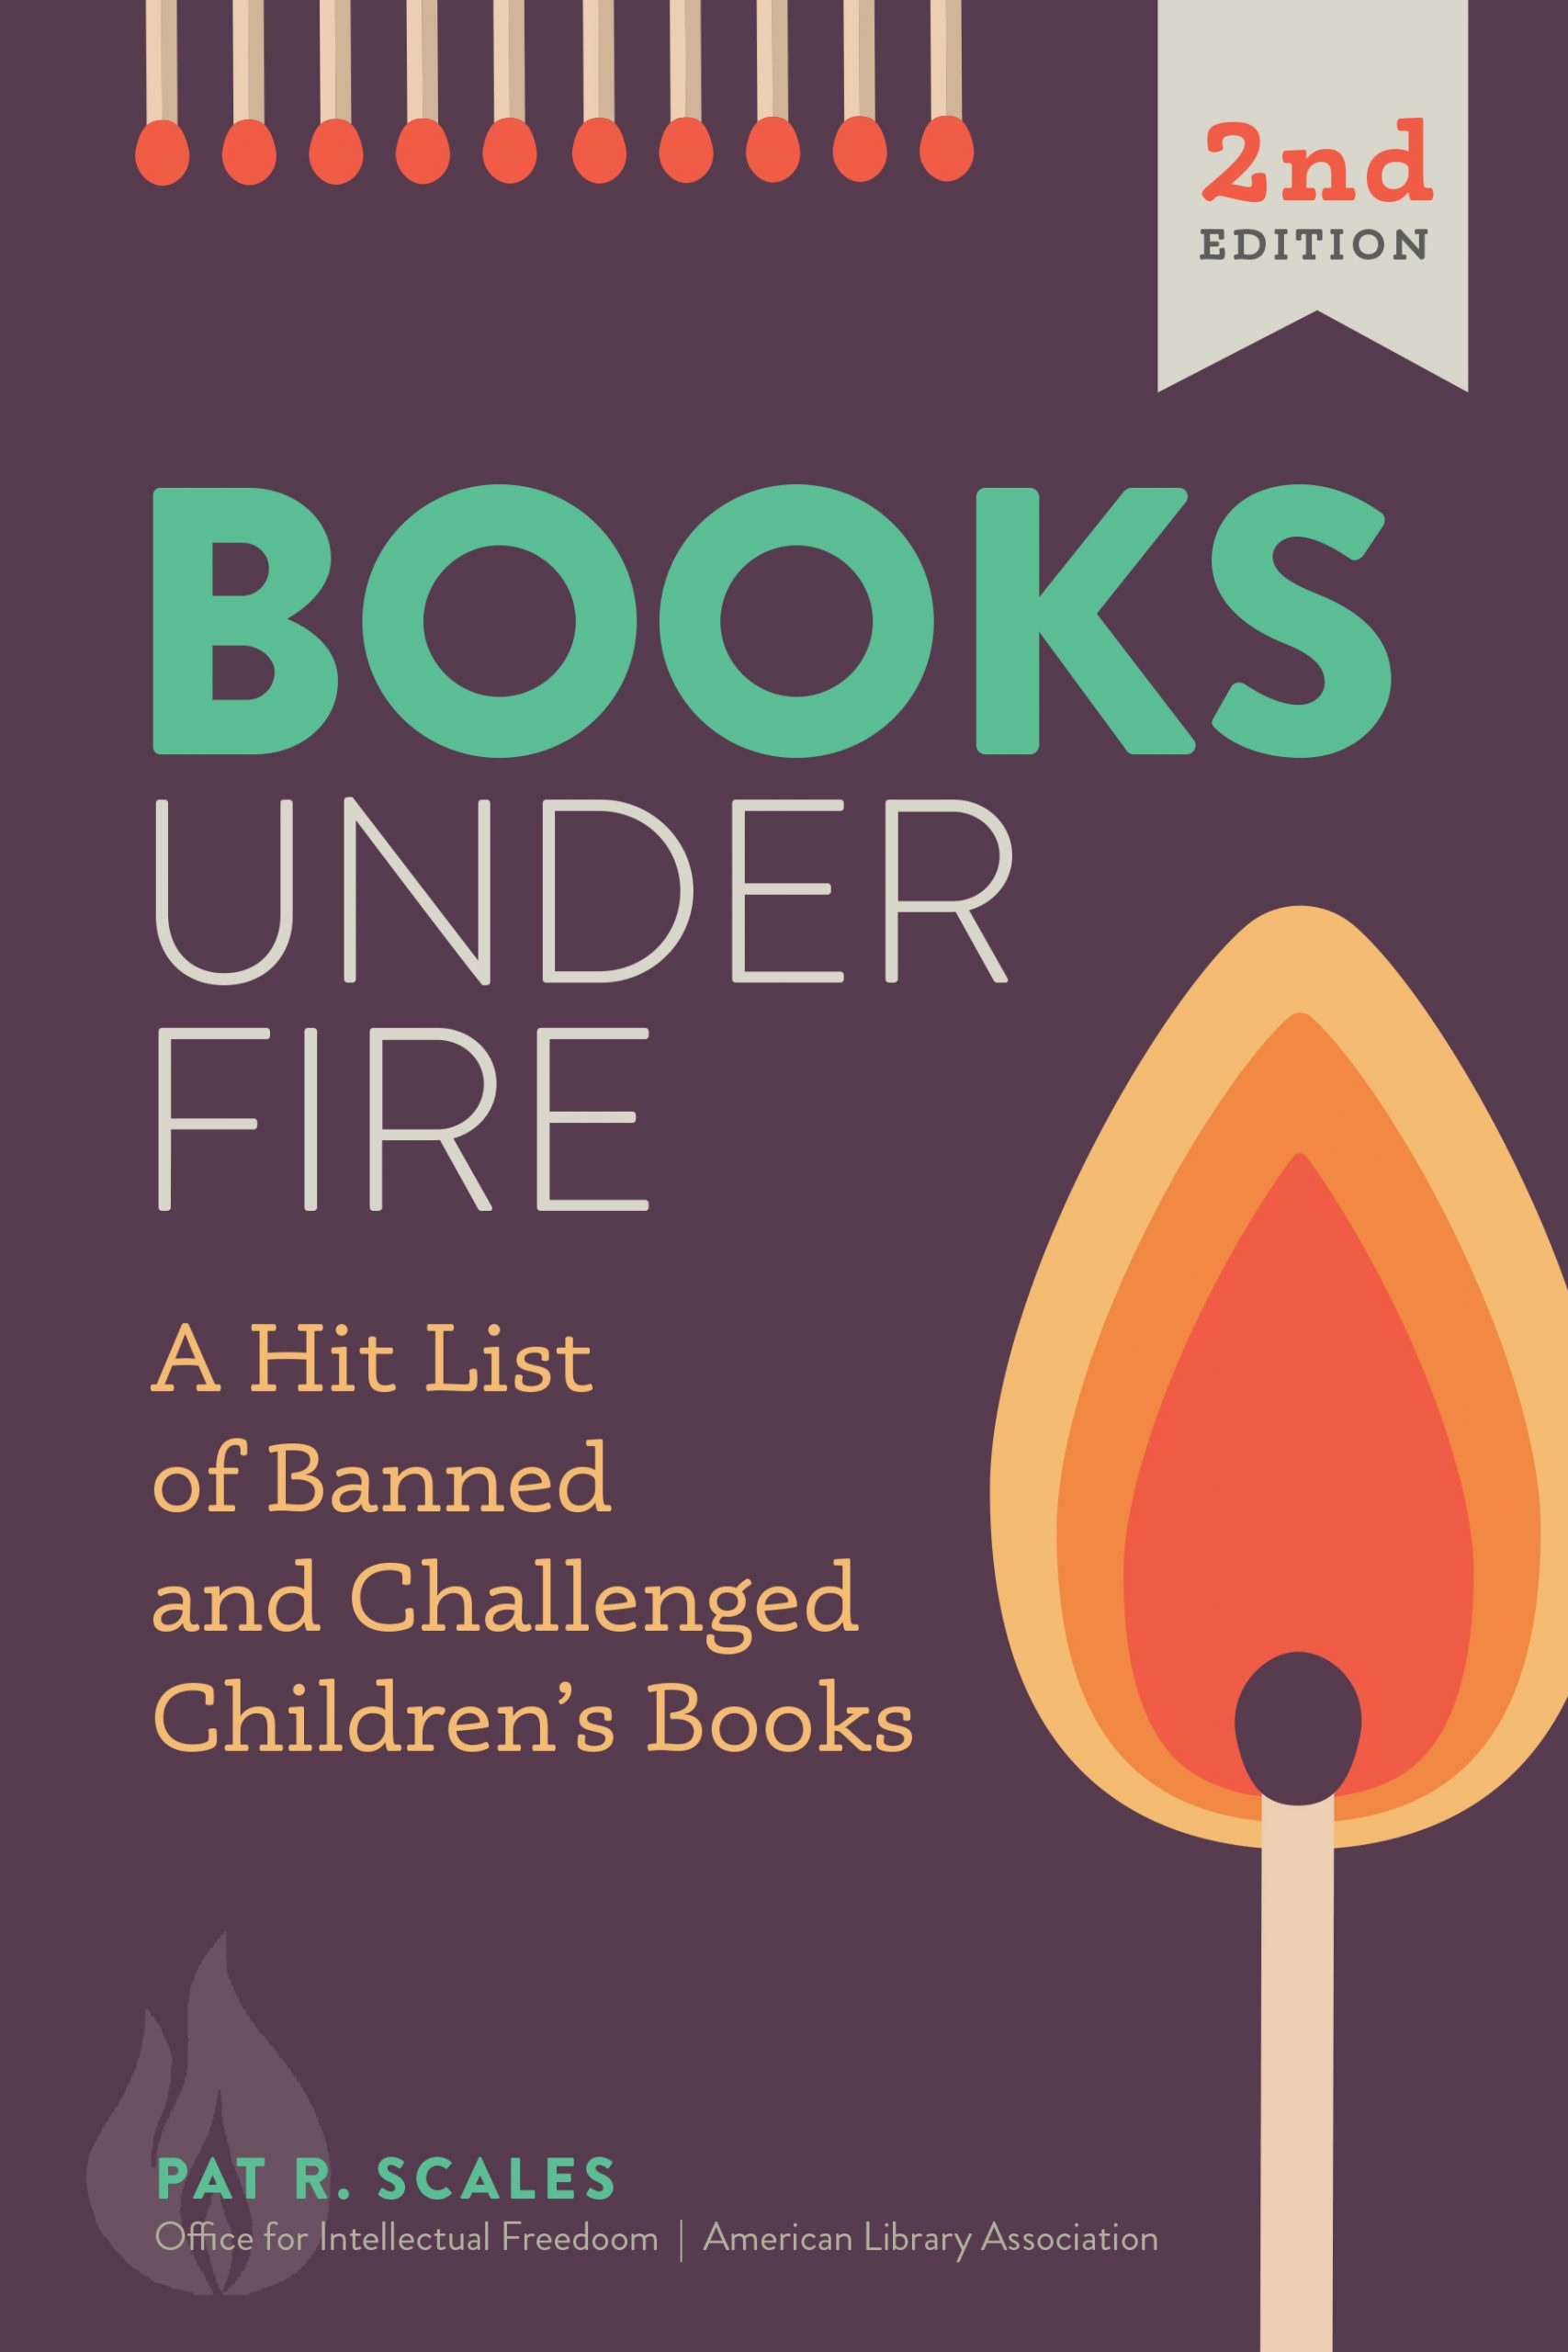 Books under Fire: A Hit List of Banned and Challenged Children's Books, Second Edition